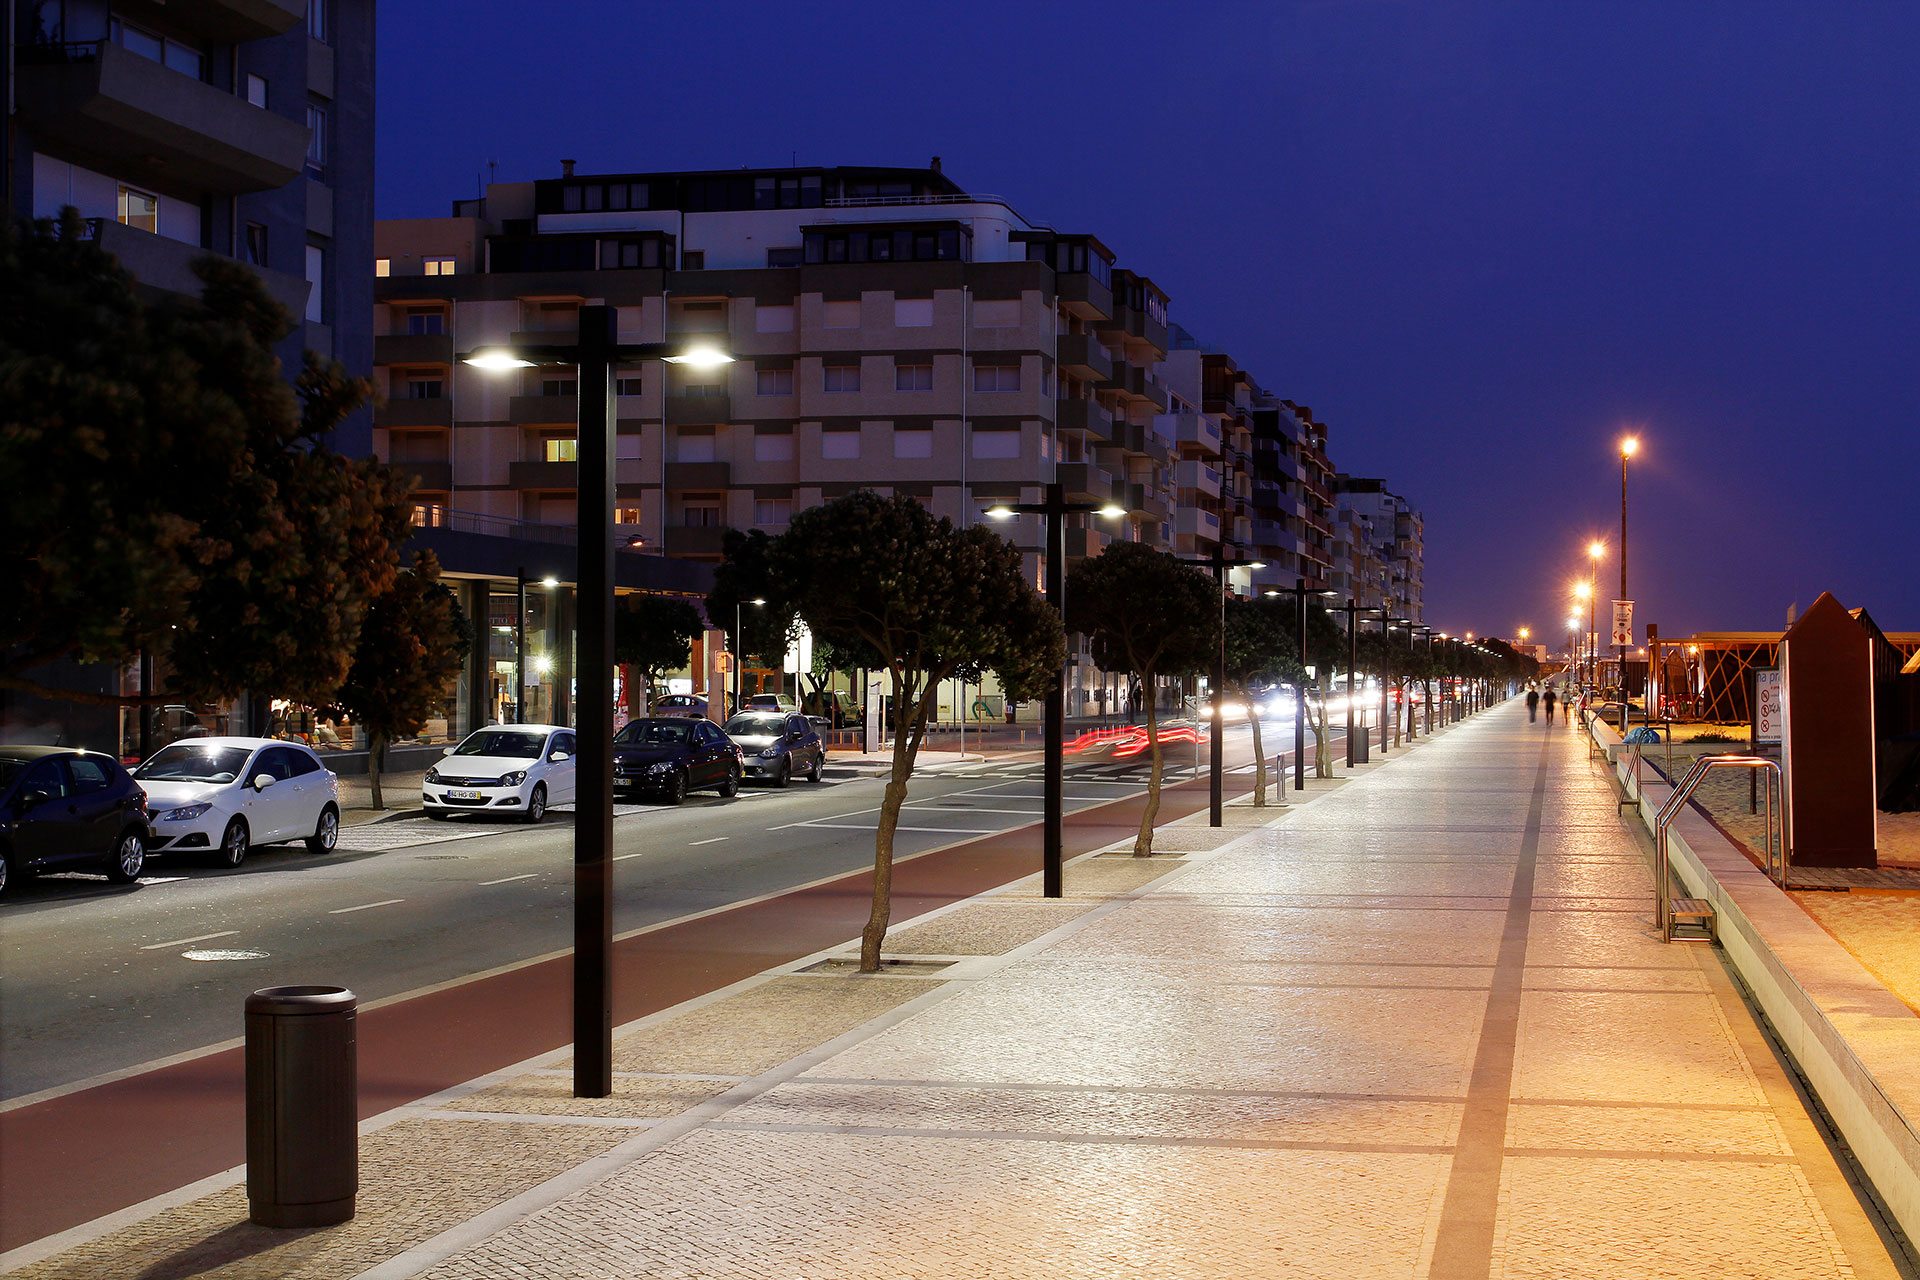 The Piano lights this bike path in Povoa de Varzim Portugal to ensure comfort and safety for cyclists